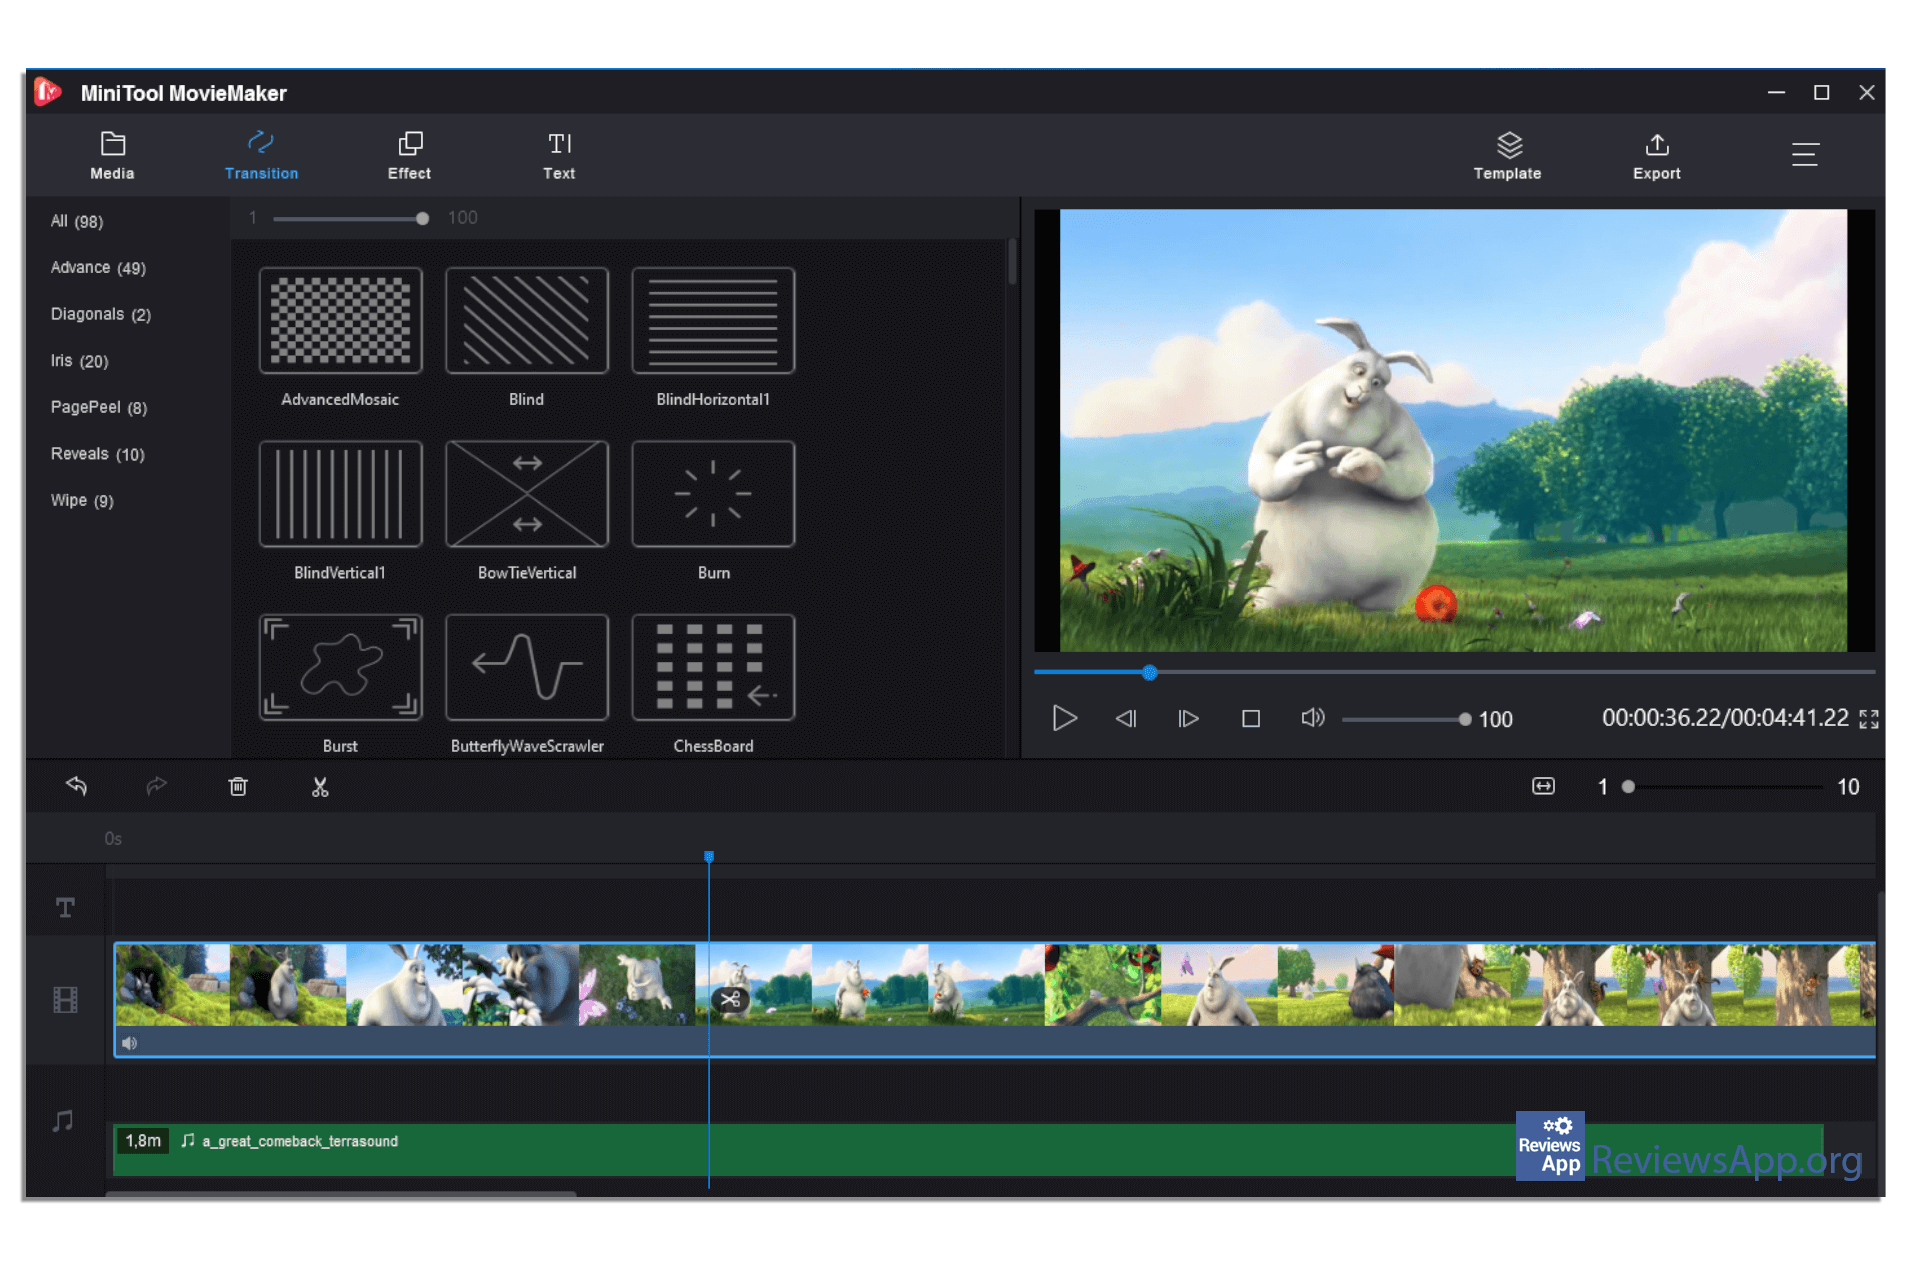 MiniTool MovieMaker transition